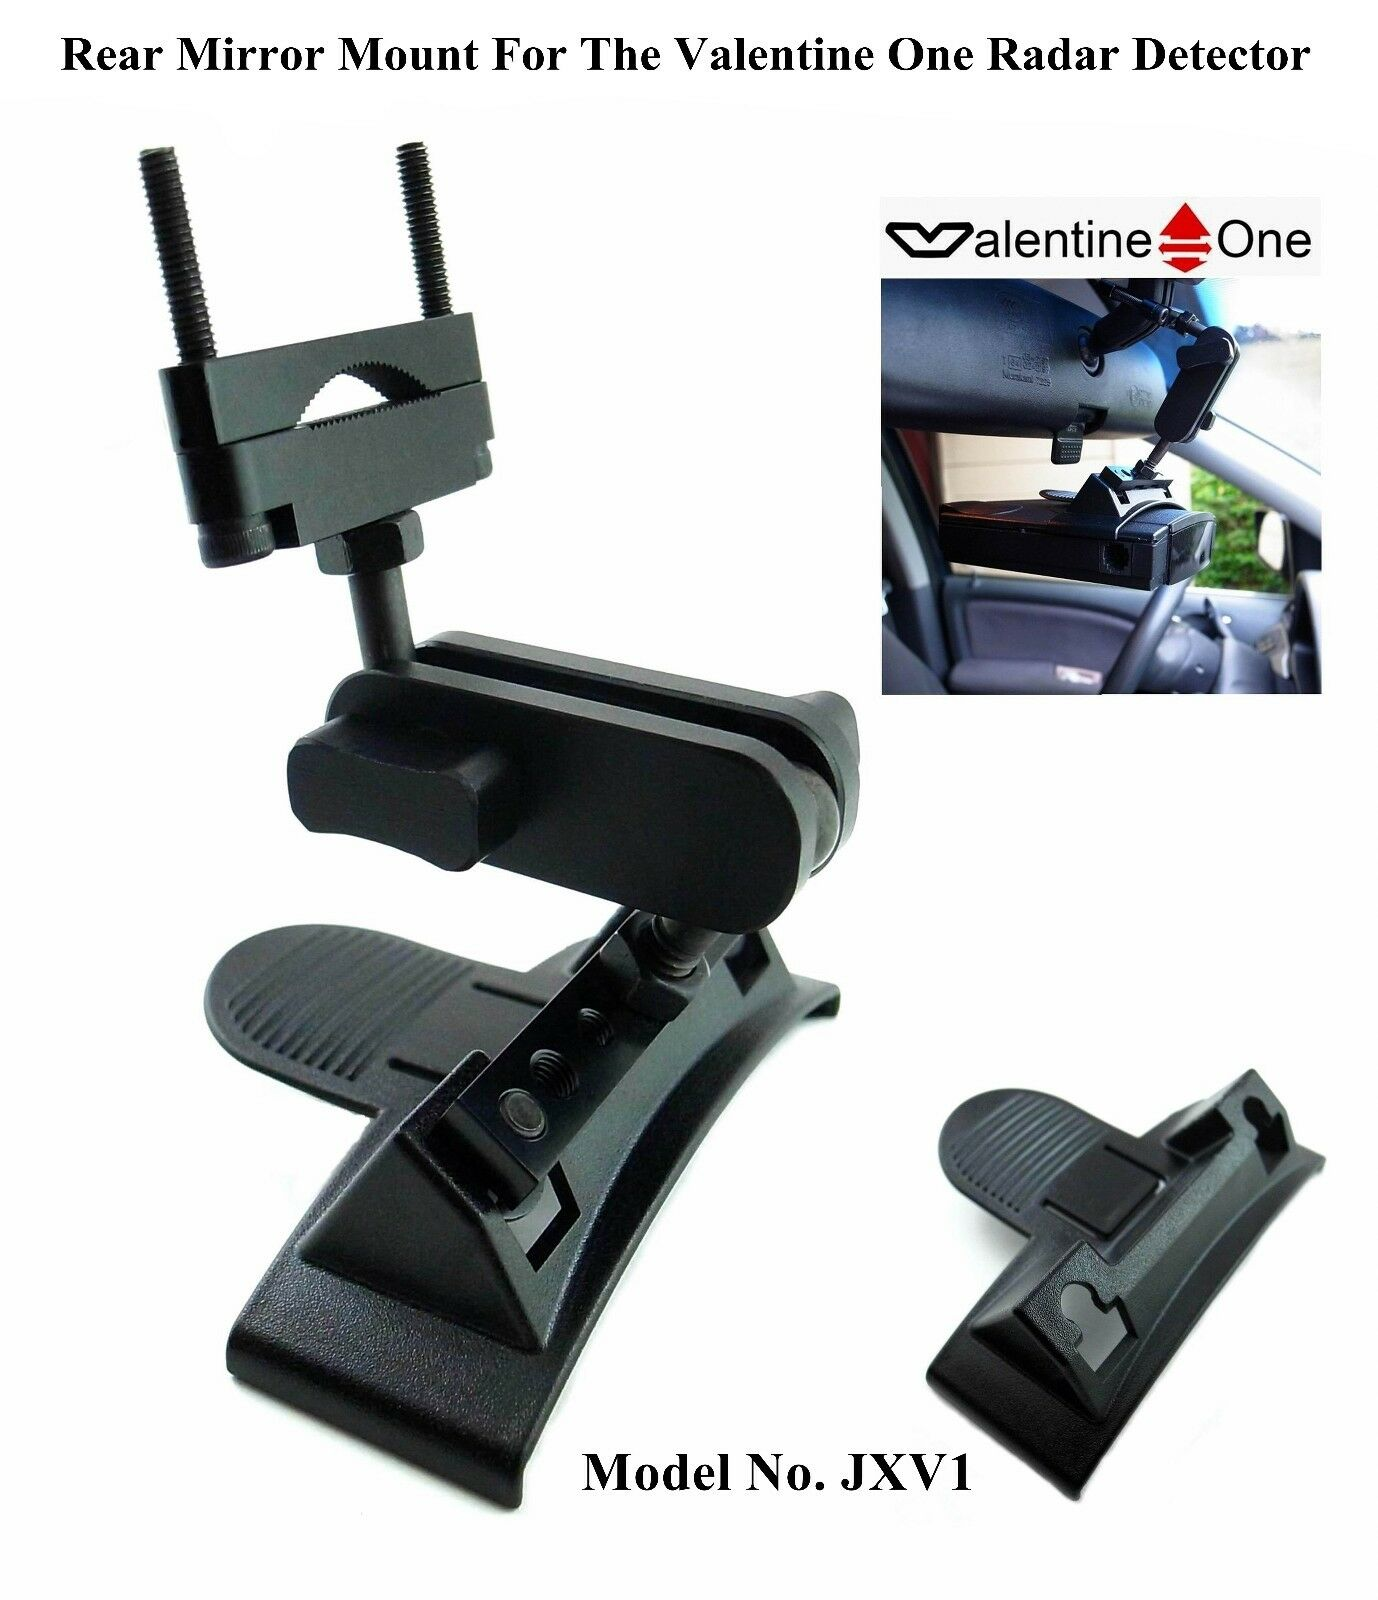 1 High Quality Car Mount For Rear Mirror Good For The Val...